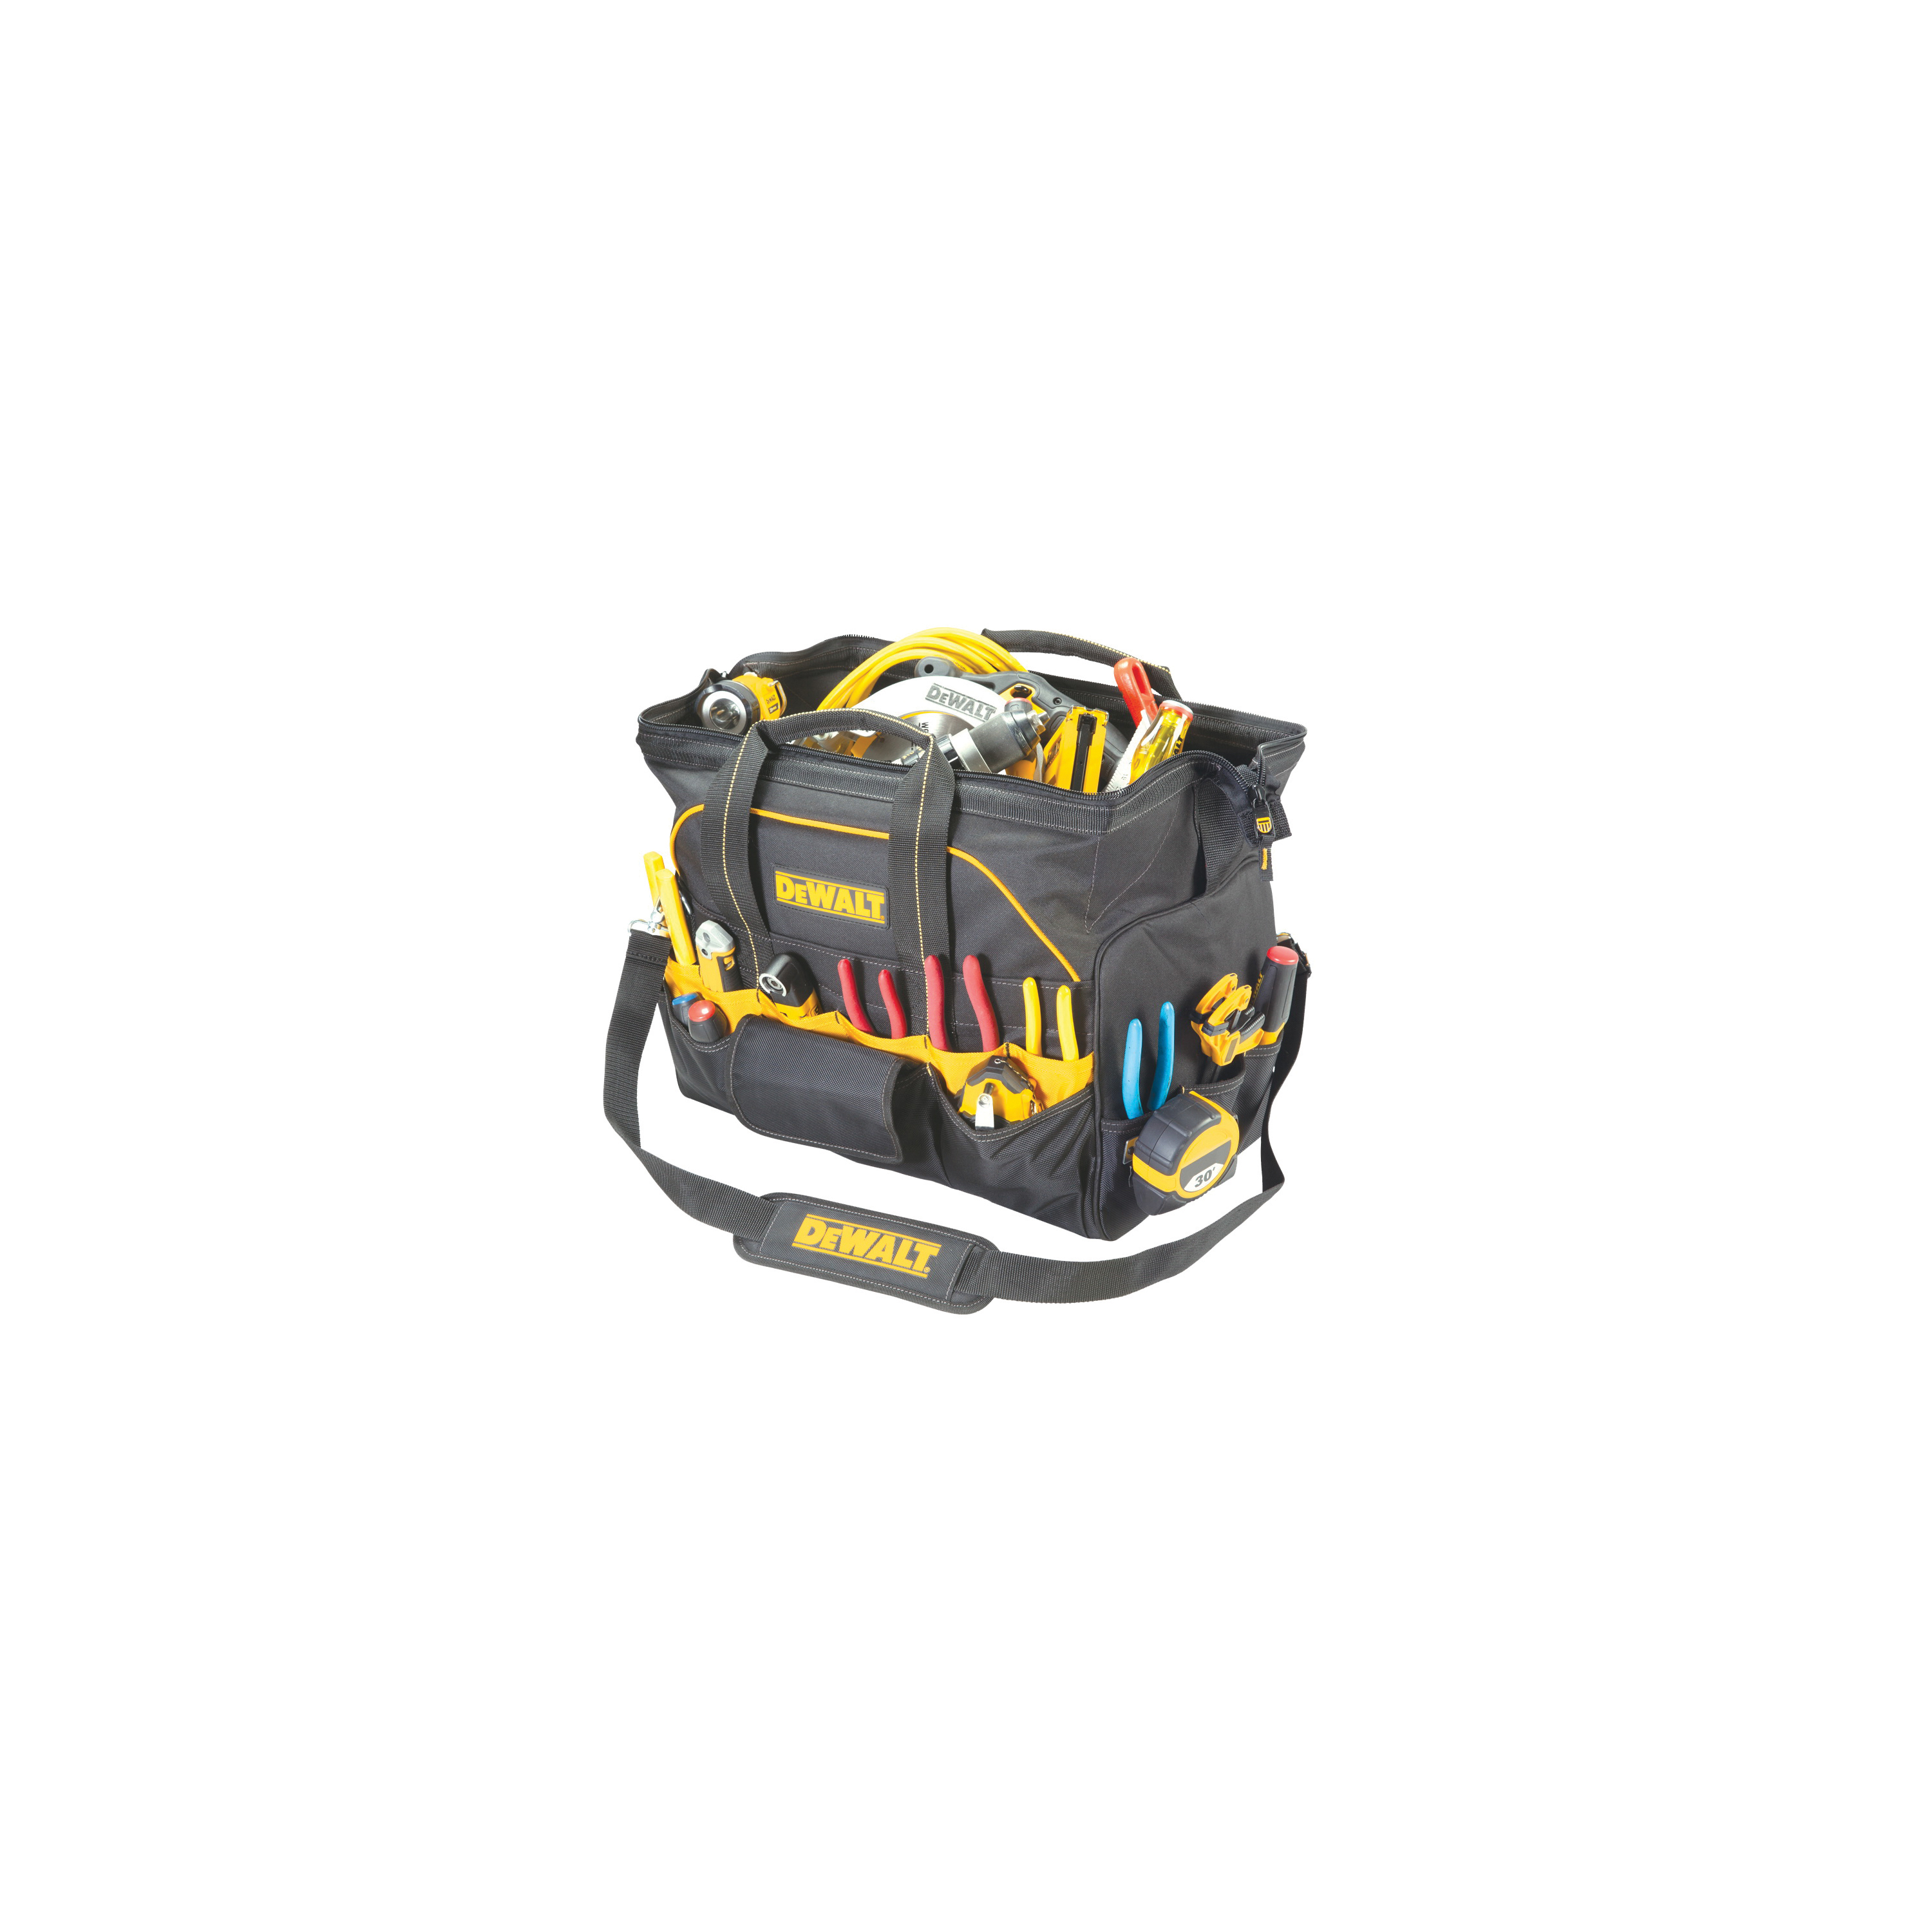 Picture of CLC DG5553 Tool Bag, 3-1/4 in W, 21-1/2 in D, 18-3/4 in H, 42 -Pocket, Ballistic Poly Fabric, Black/Yellow